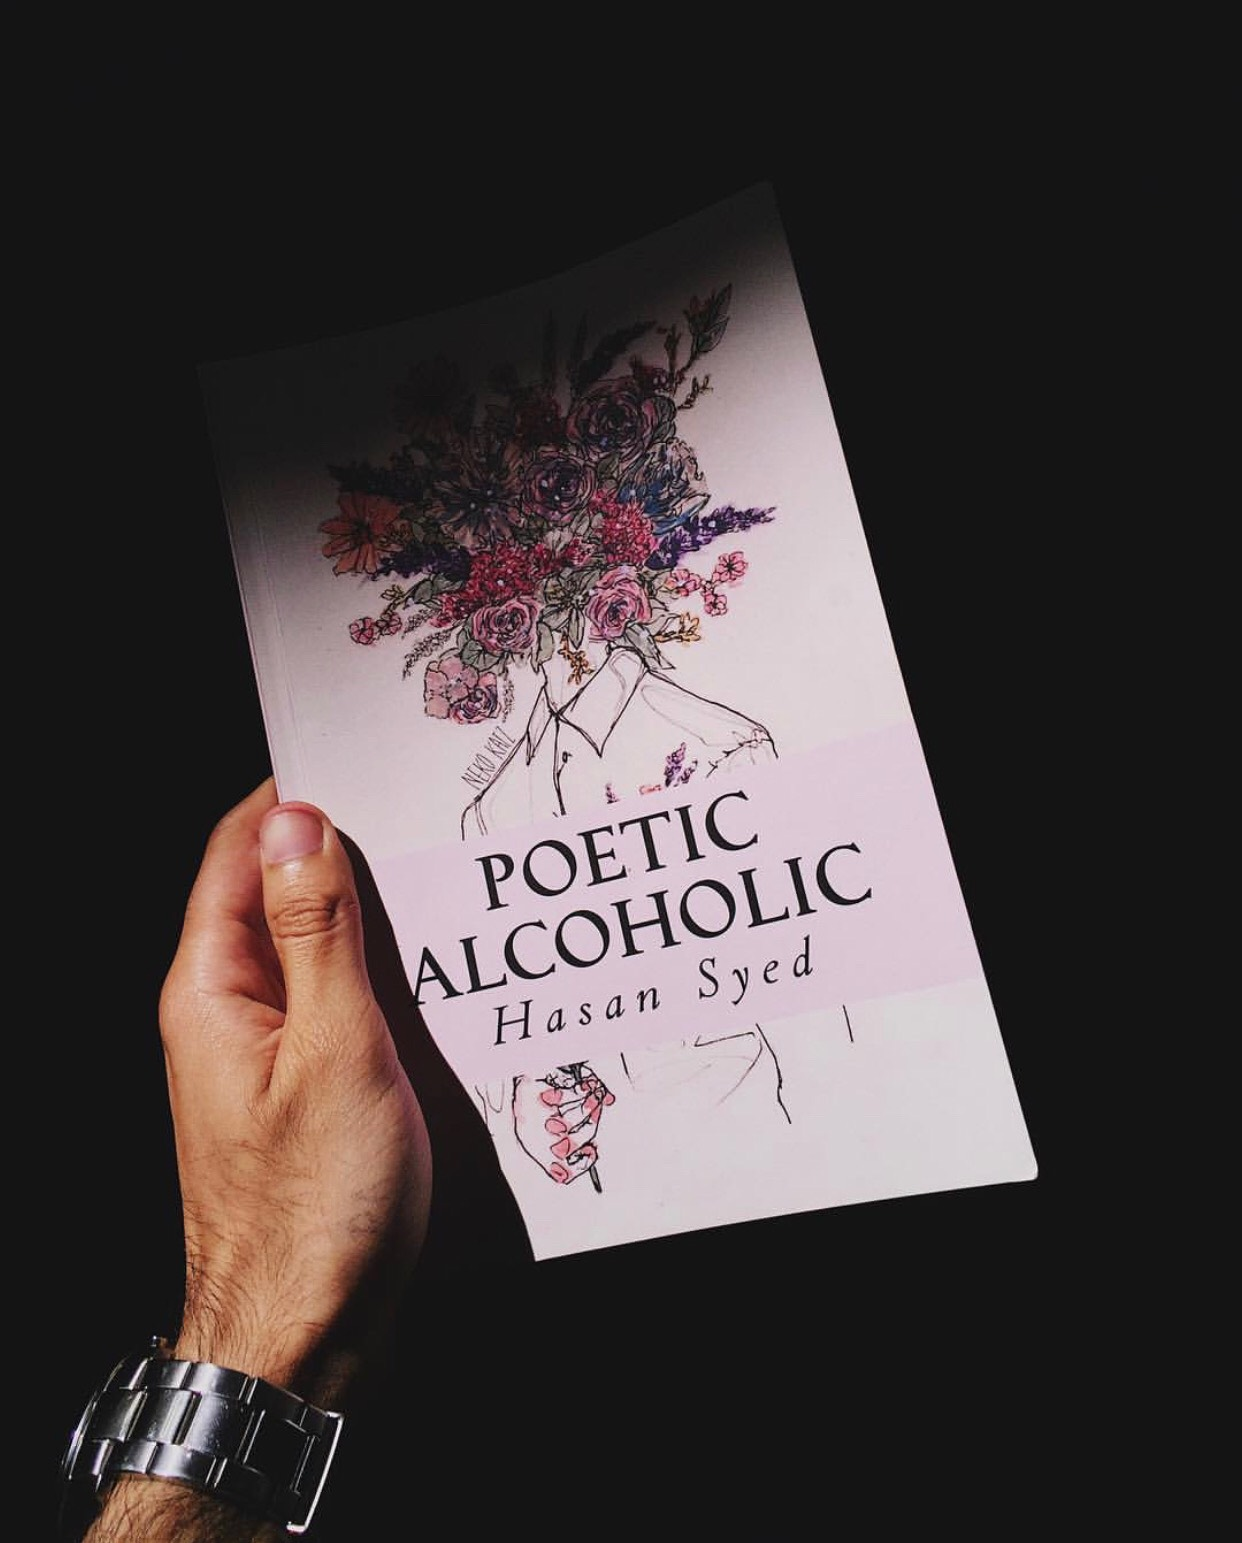 Don't forget to visit Hasan's    Instagram    and check out  Poetic Alcoholic , available now on    Amazon   .